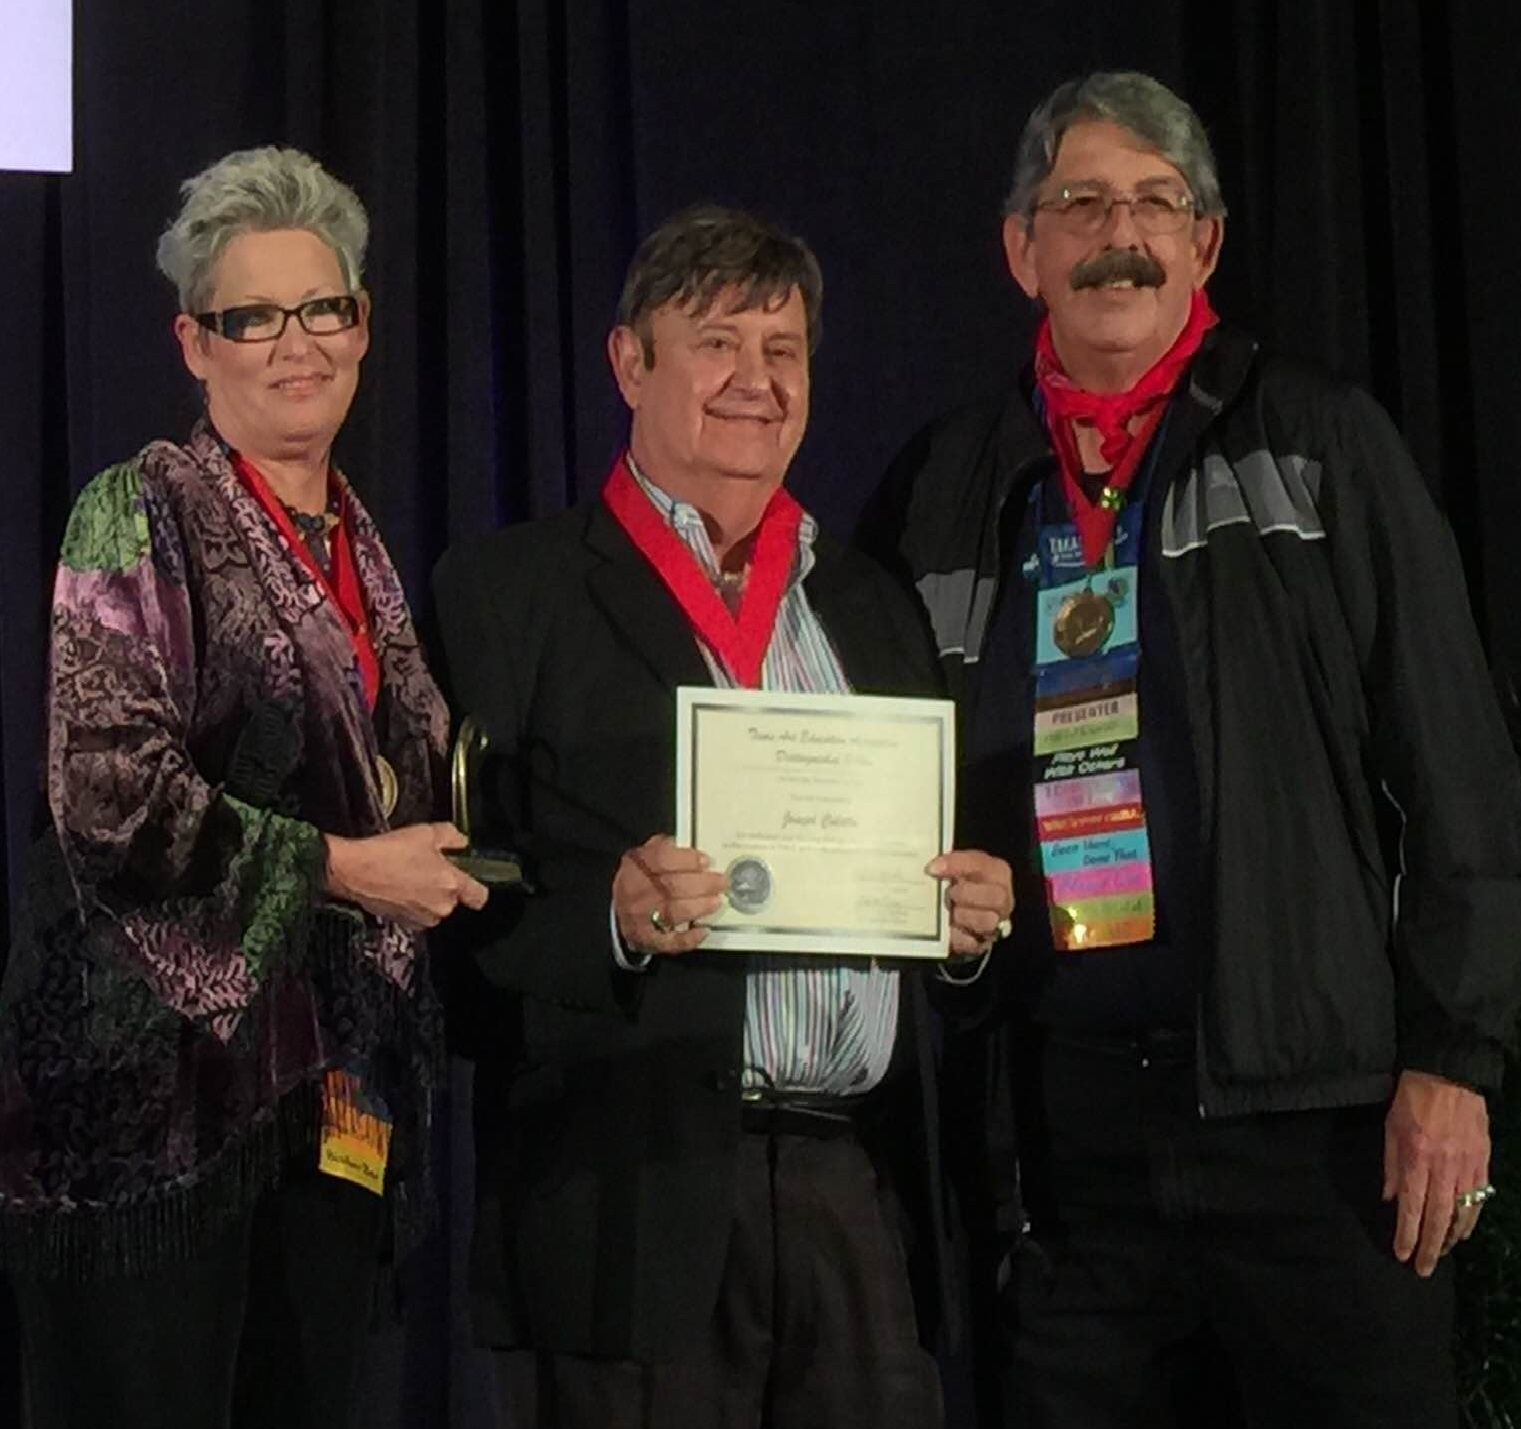 """, """"You Live Forever Through Your Students"""" : Artist Joseph Culotta Inducted as Distinguished Fellow of Texas Art Education Association (TAEA)"""